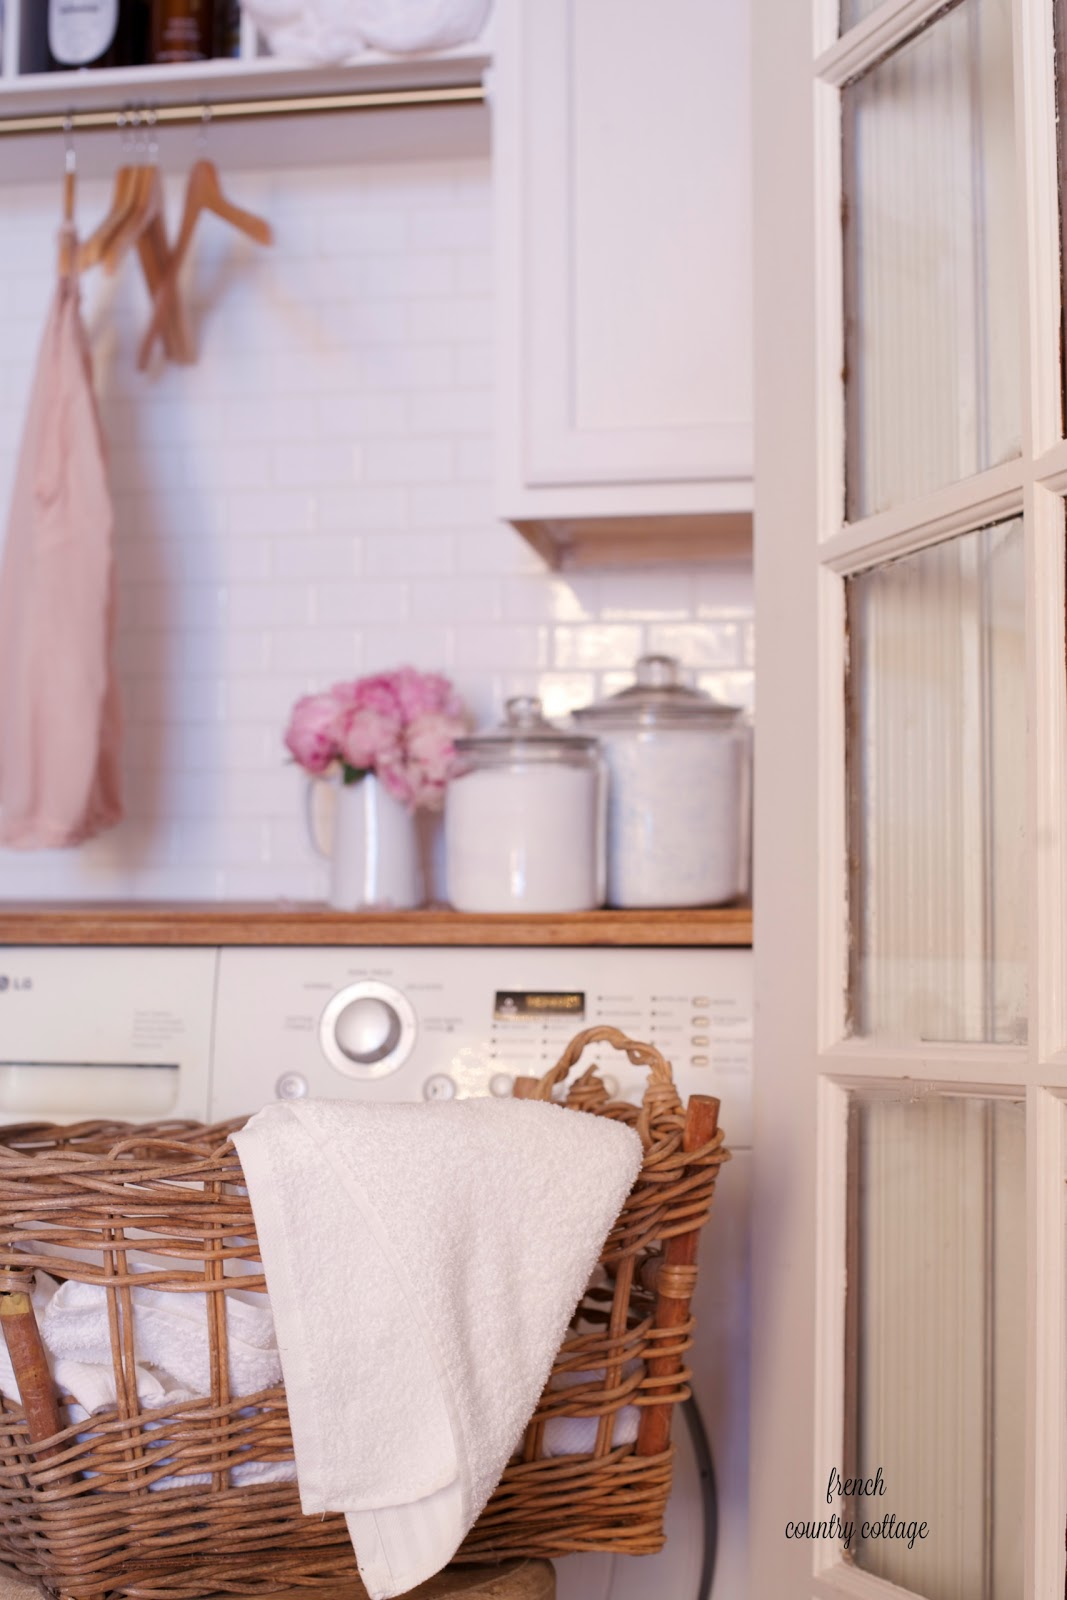 Bathroom Renovation Under $500 under $500 laundry room renovation reveal - french country cottage